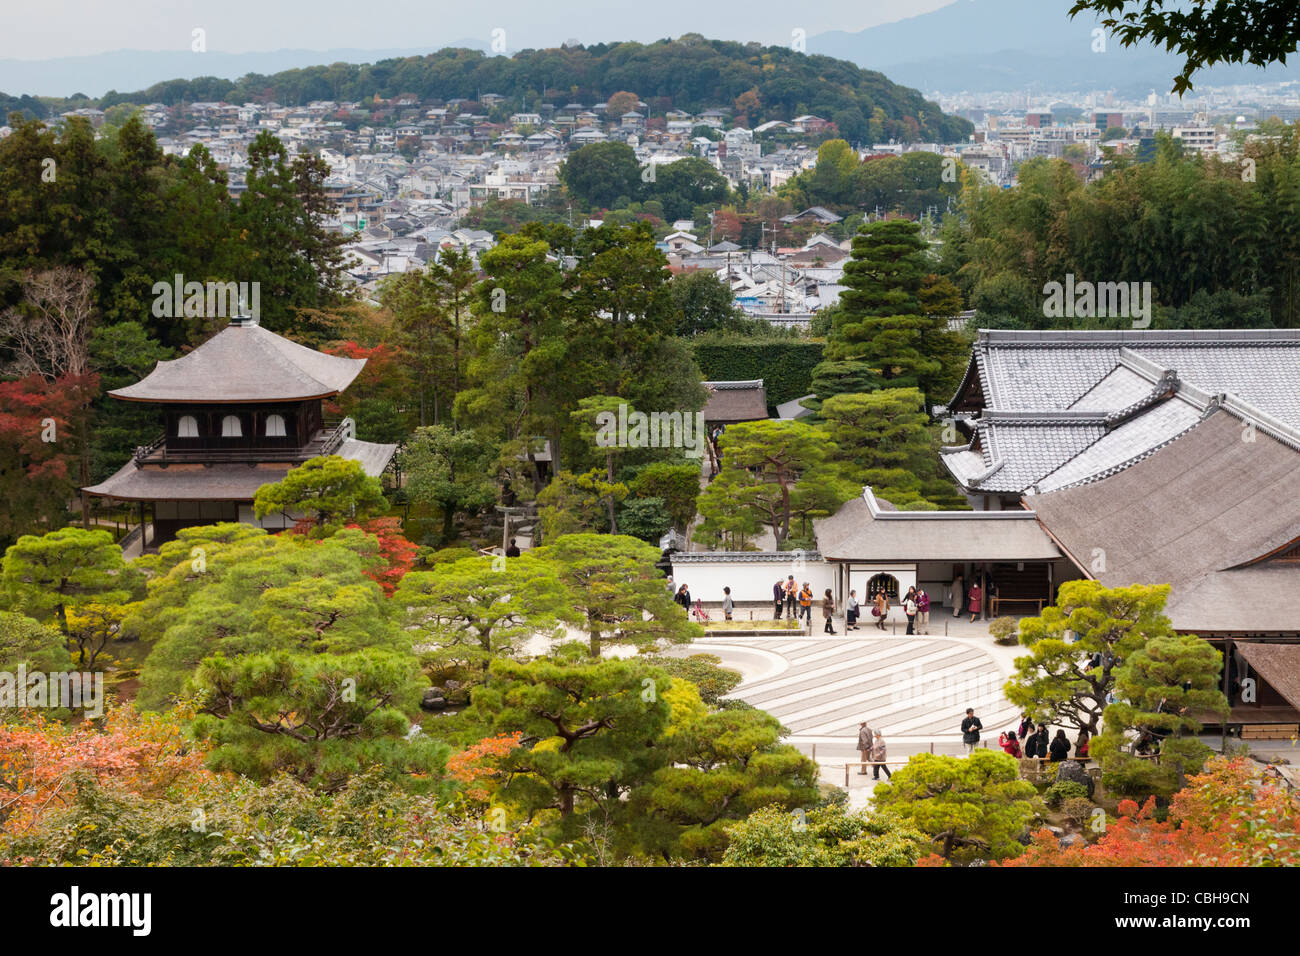 Ginkaku-ji Temple and its gardens, Kyoto, Japan, photographed in November, a popular month for viewing autumn colour - Stock Image